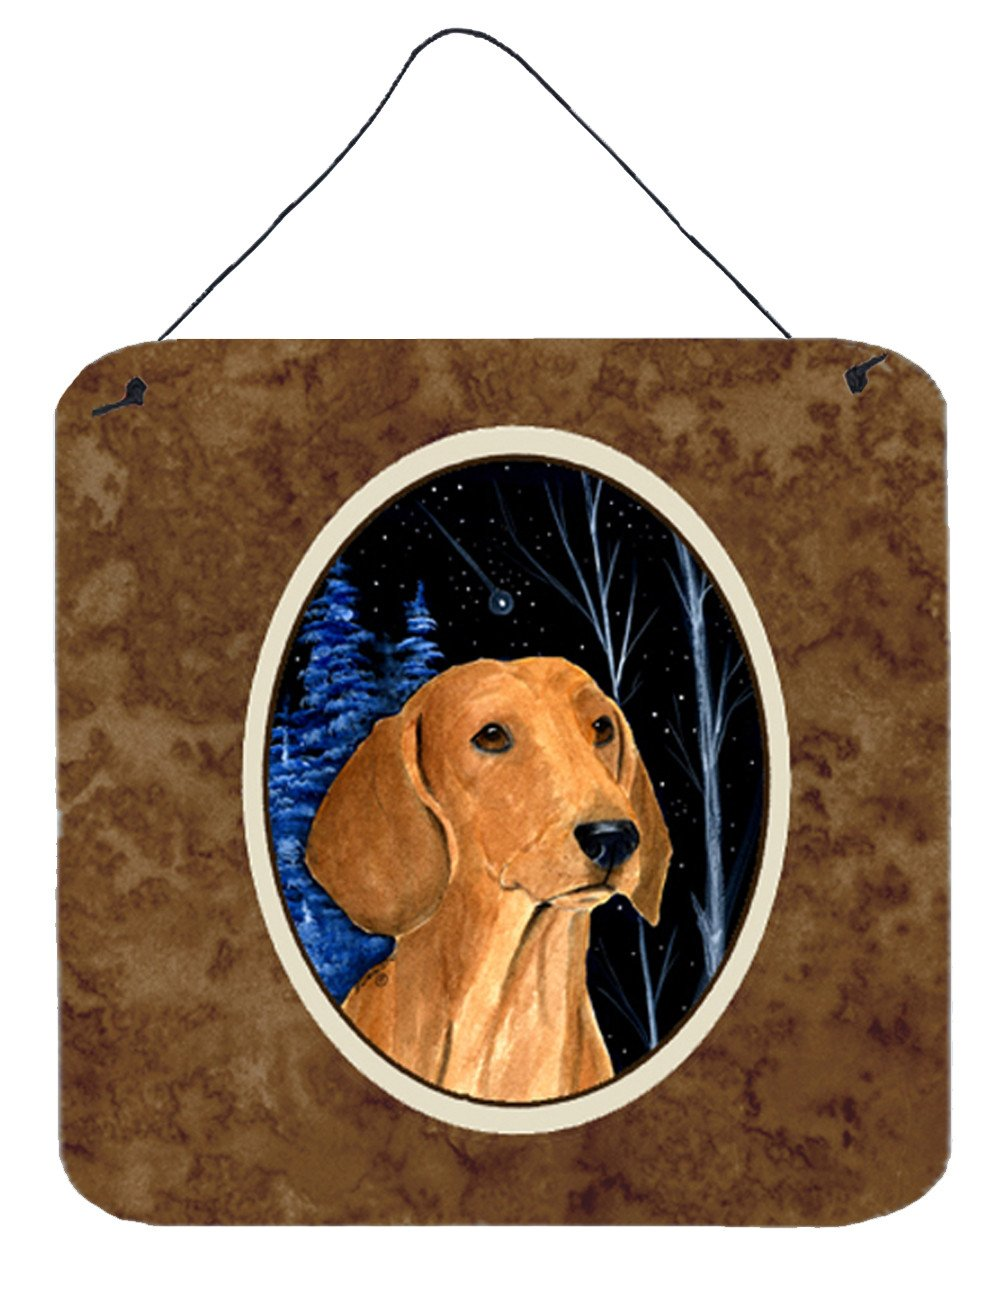 Buy this Starry Night Dachshund Aluminium Metal Wall or Door Hanging Prints